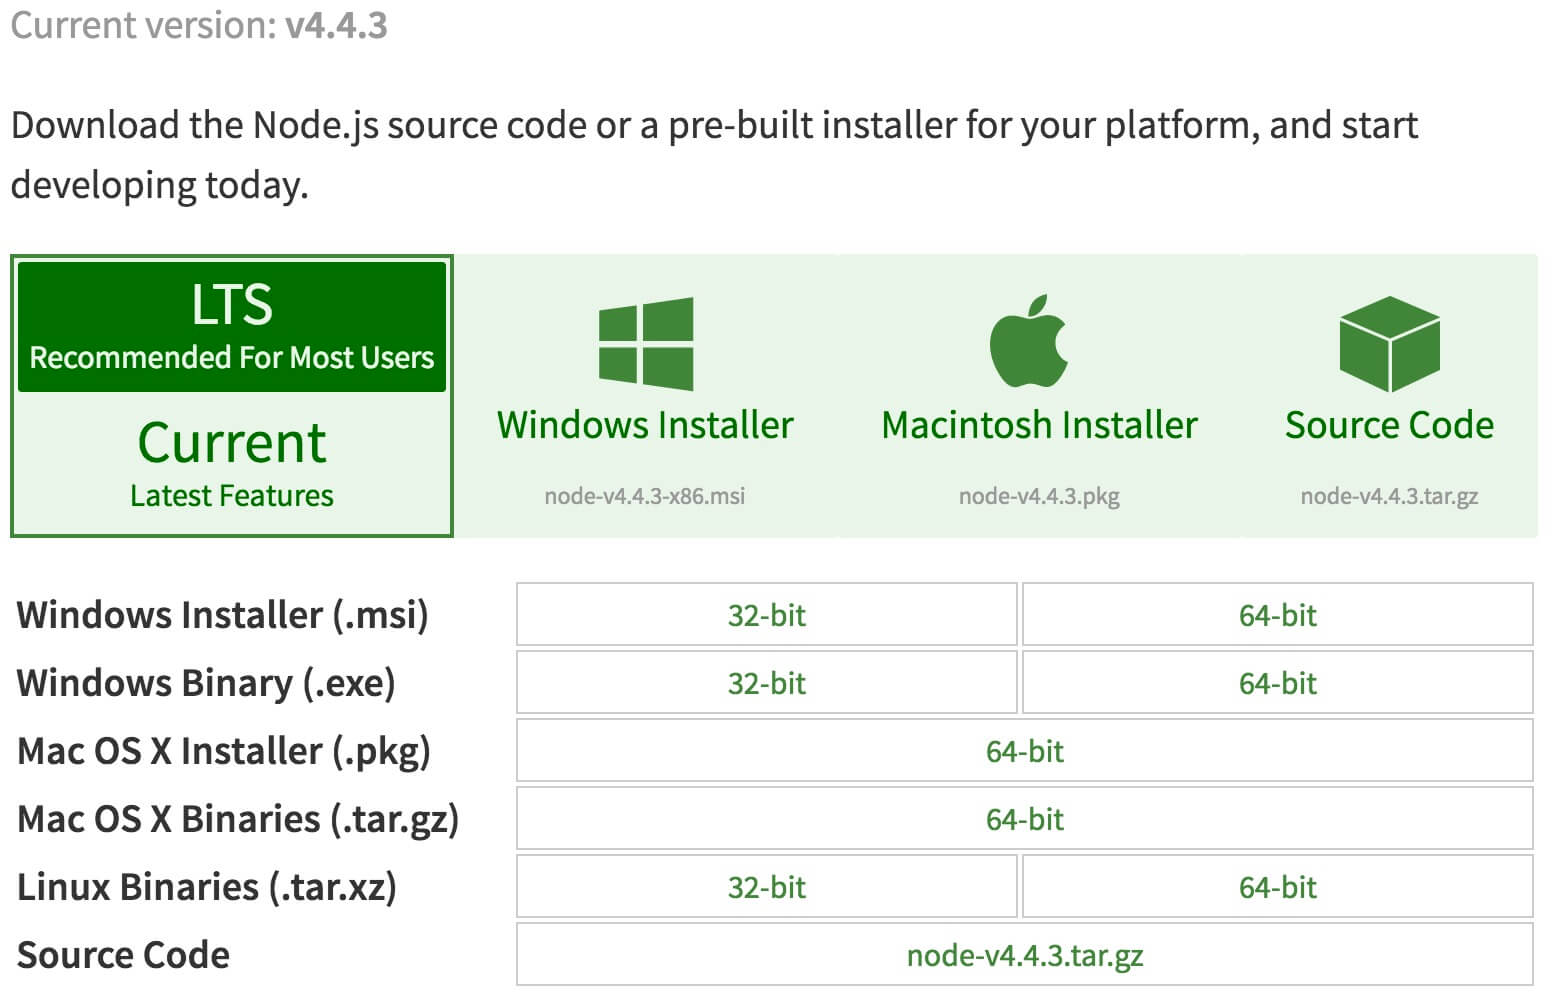 nodejs_download